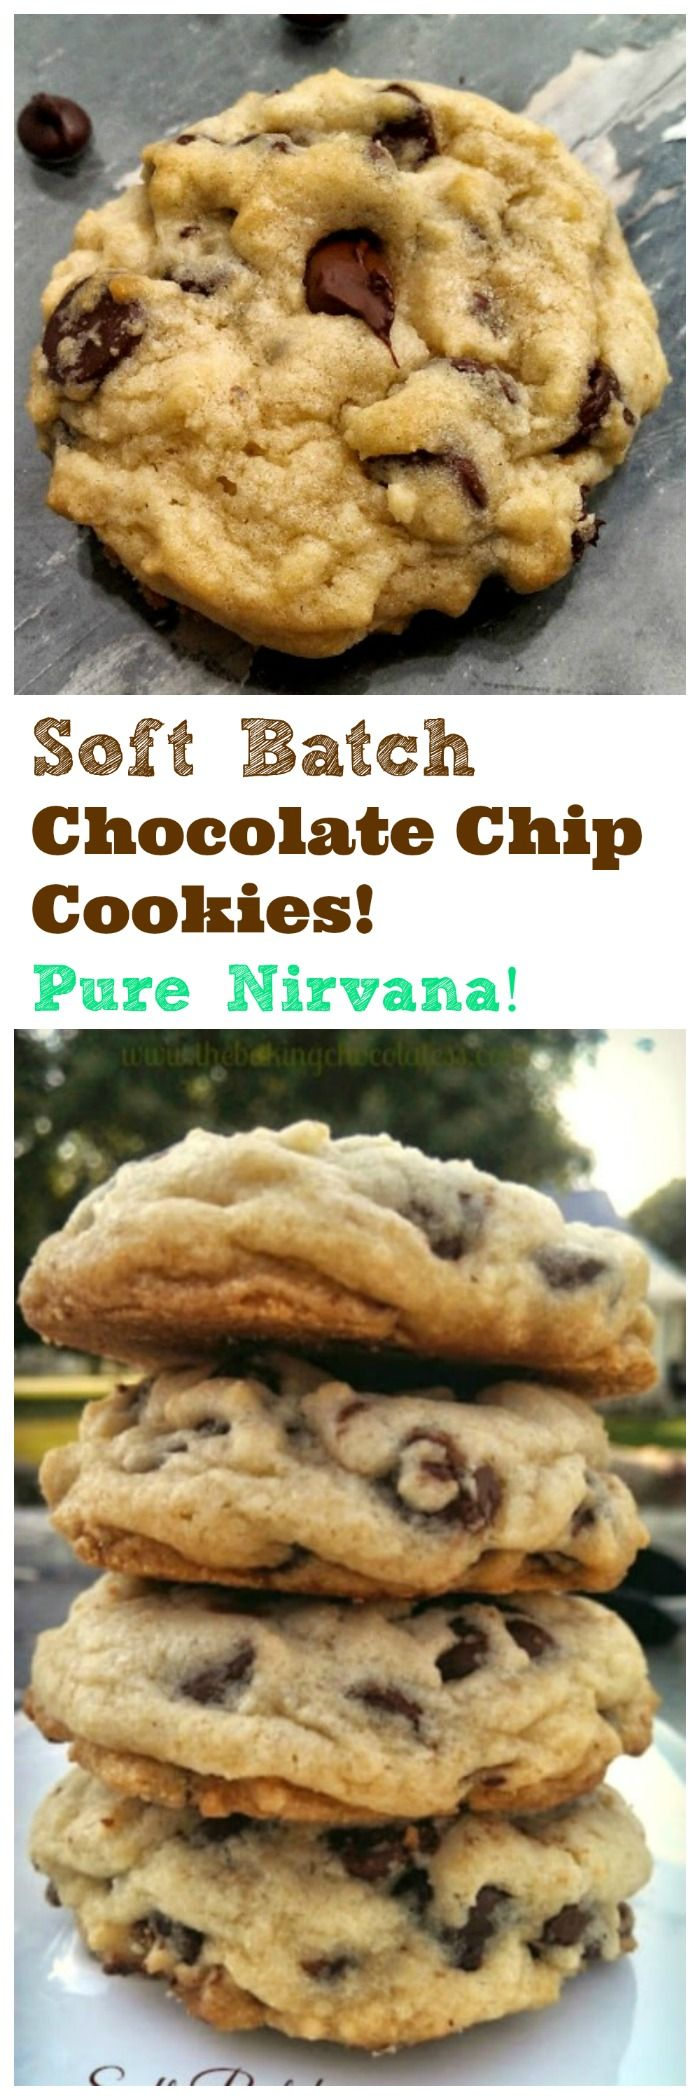 "Soft Batch Chocolate Chip Cookies!  Pure Nirvana!  Delectable, insane, buttery, rich, thick, soft-batch chocolate chip cookies are pure ""Nirvana"". You won't want to miss out on these! via @https://www.pinterest.com/BaknChocolaTess/"